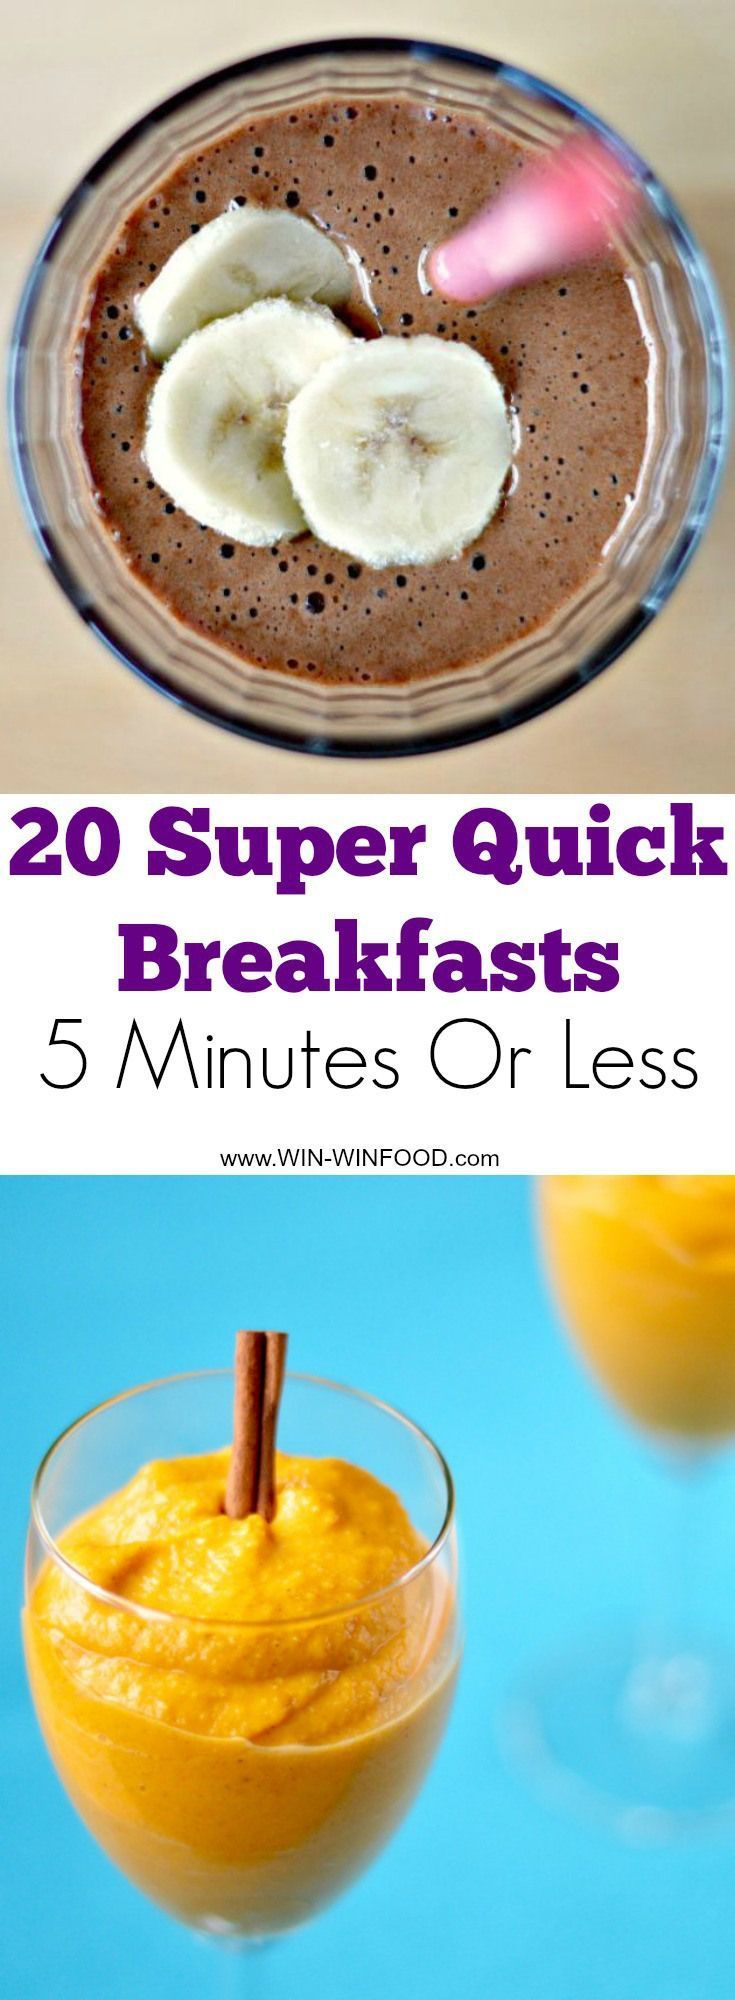 20 Quick Vegan Breakfast Recipes - 5 Minutes Or Less. Refined sugar free. Most of the recipes are also #gluten-free!